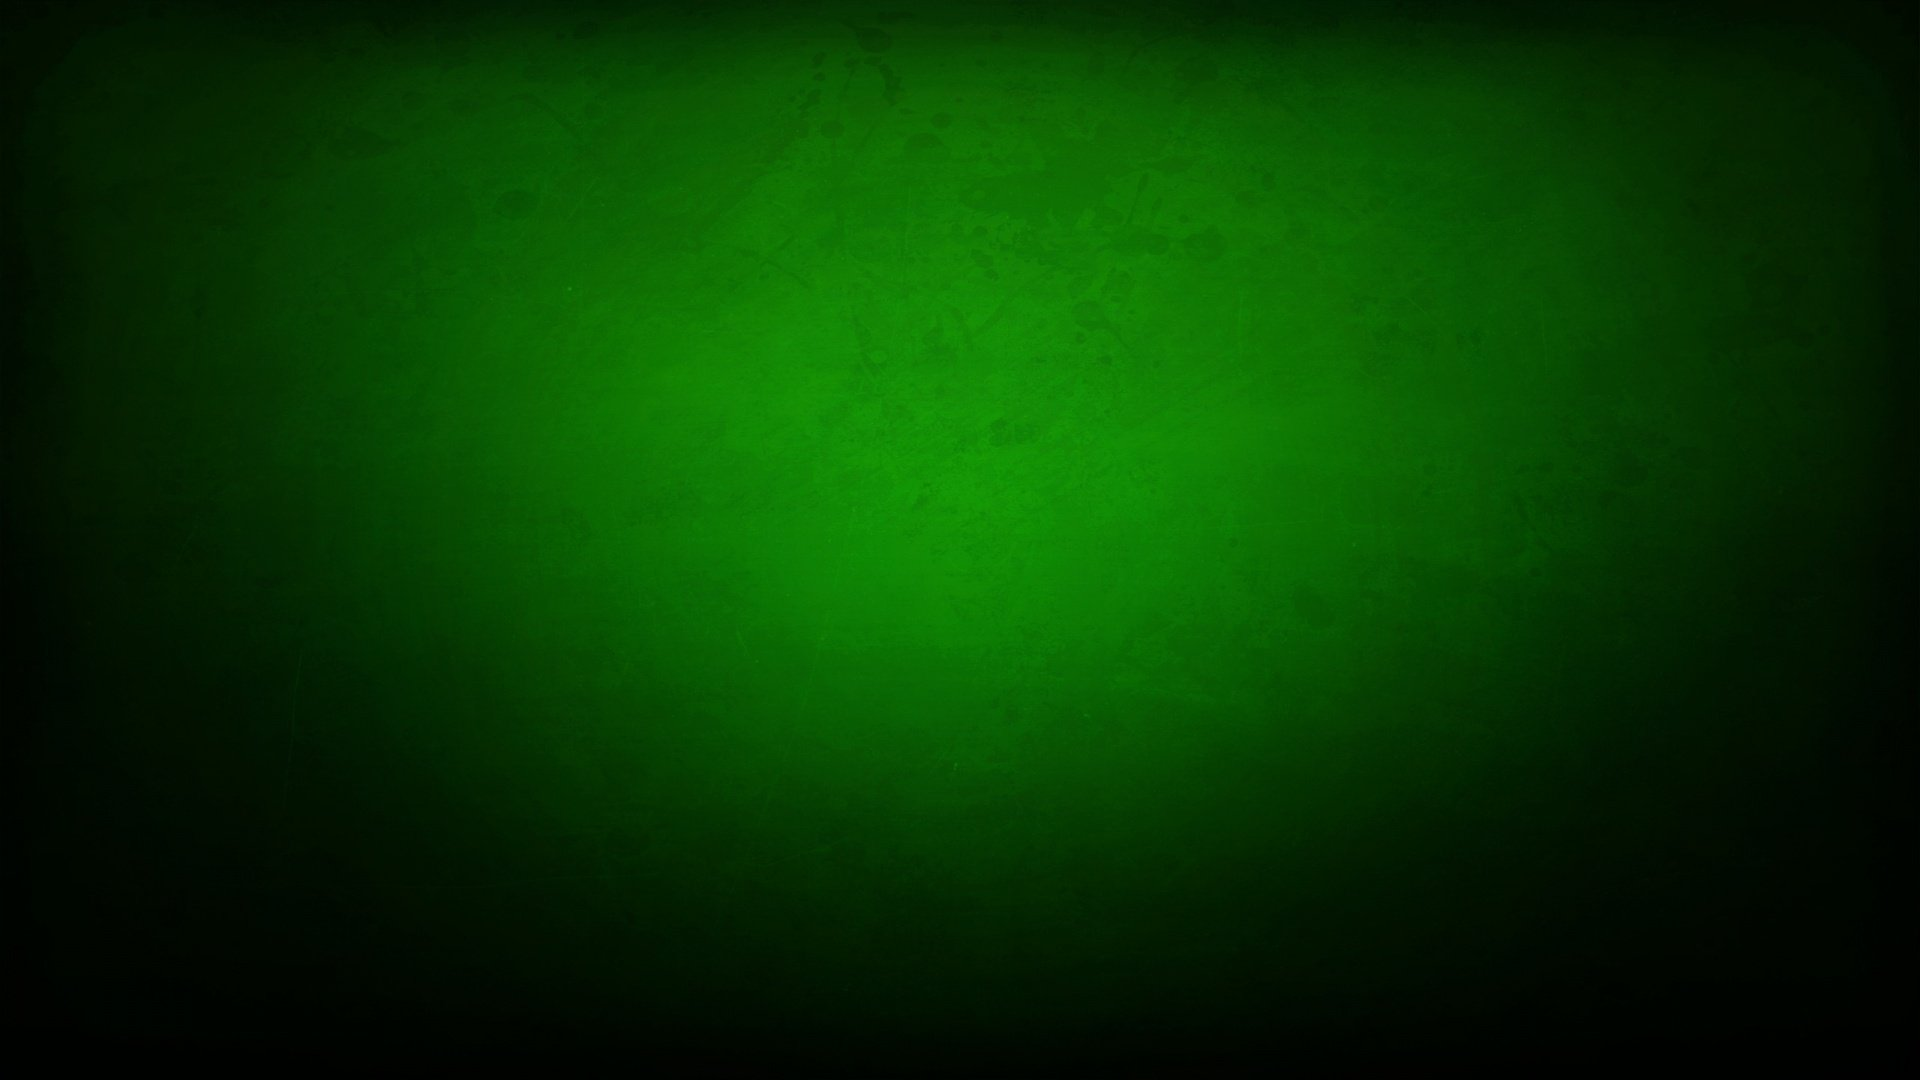 Black And Green Wallpapers   HD Wallpapers Lovely 1920x1080